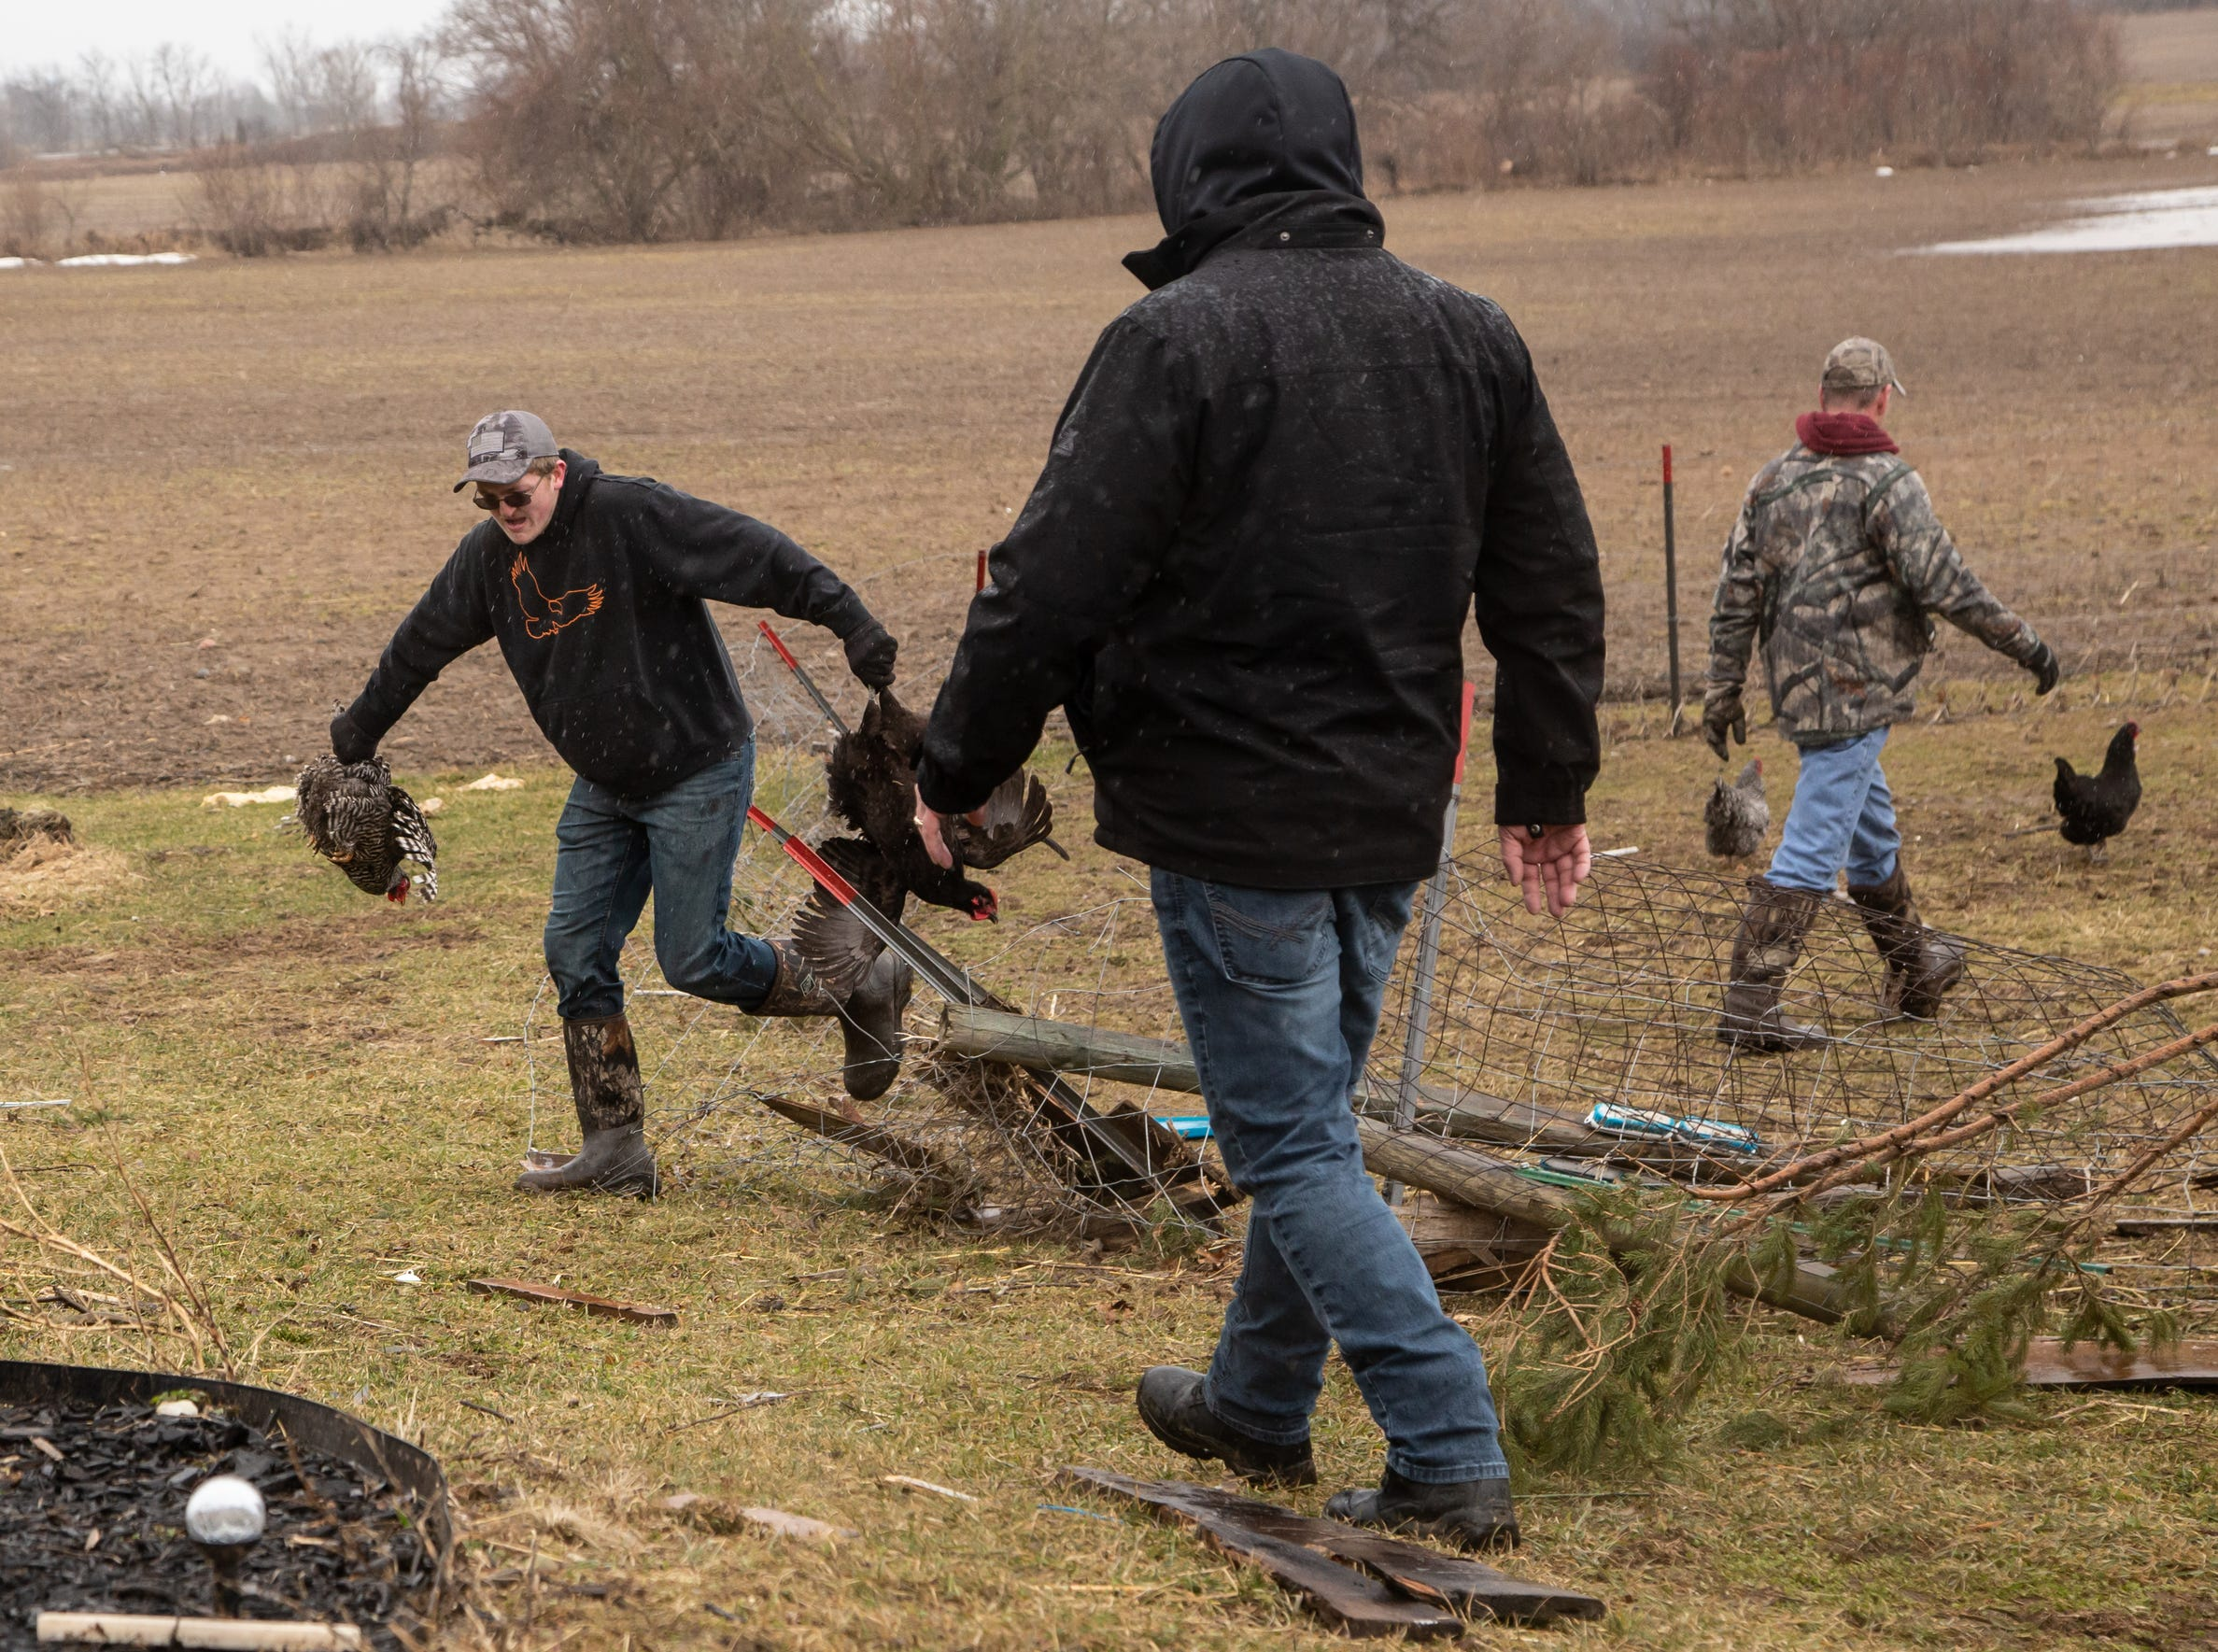 Dawson Terwilliger (left) of Grand Blanc helps wrangle chicken at a home in Bancroft on Friday, March 15, 2019 after a tornado through Shiawassee County overnight. The chickens were loose after the coup was destroyed and garage and house were damaged at the home of Bobbiejo Bruff. Two goats and a chicken were killed in the storm.